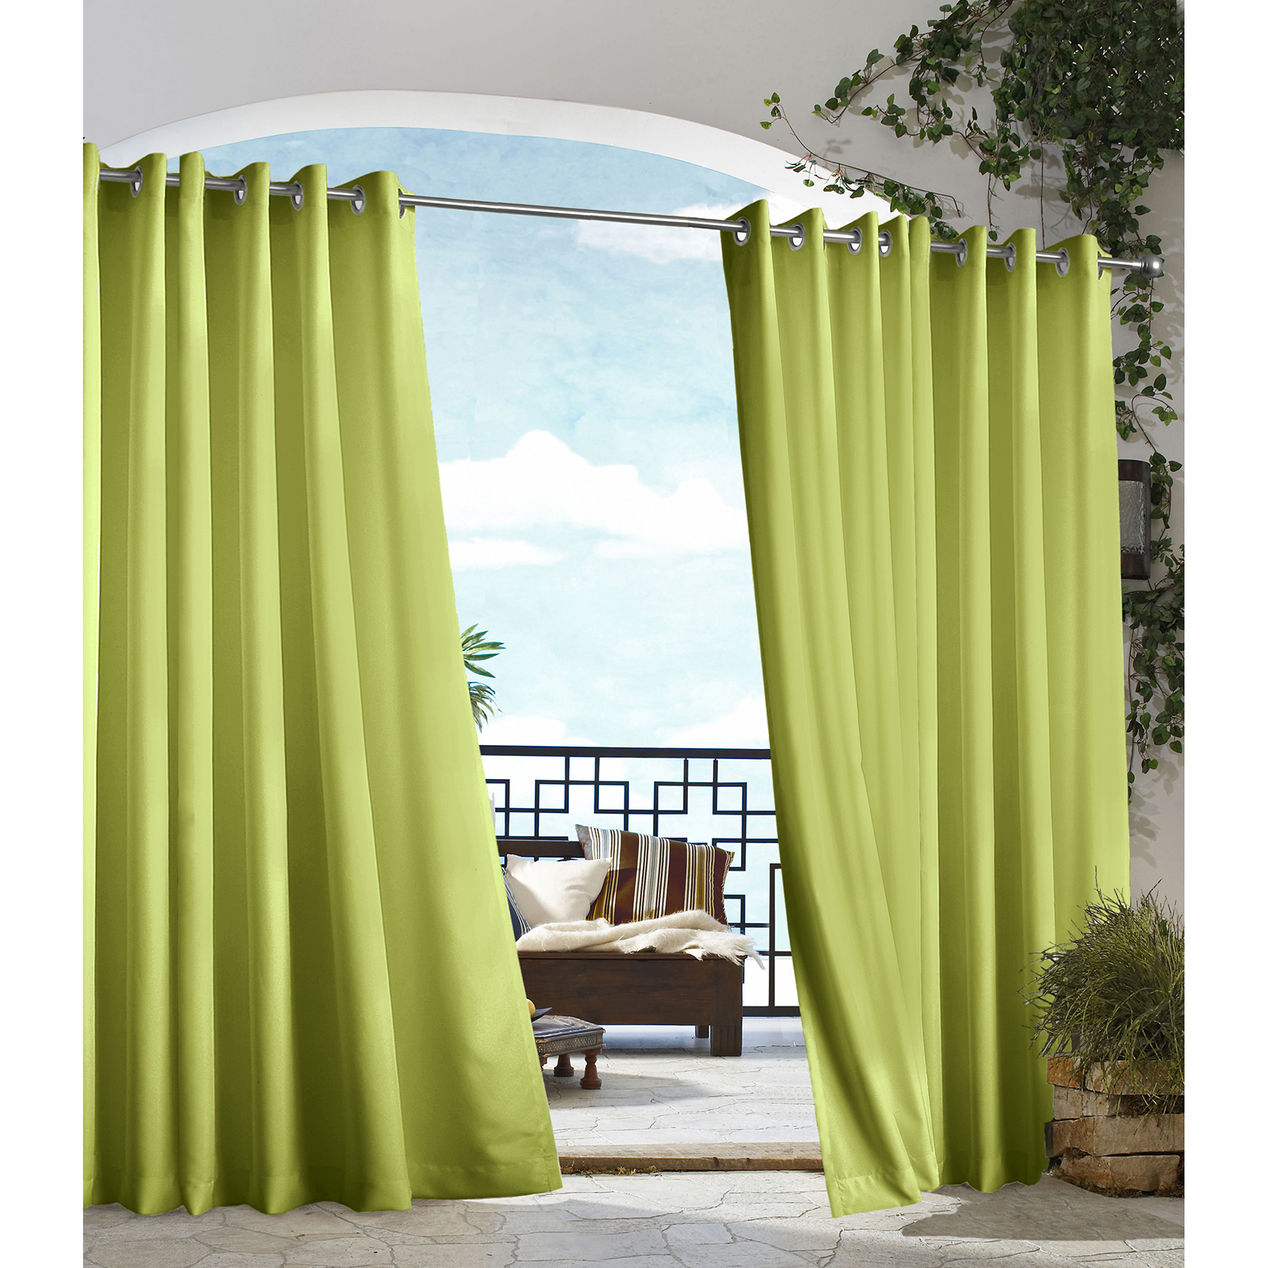 Outdoor Curtains Outdoor Drapes Outdoor Patio Curtains  Green